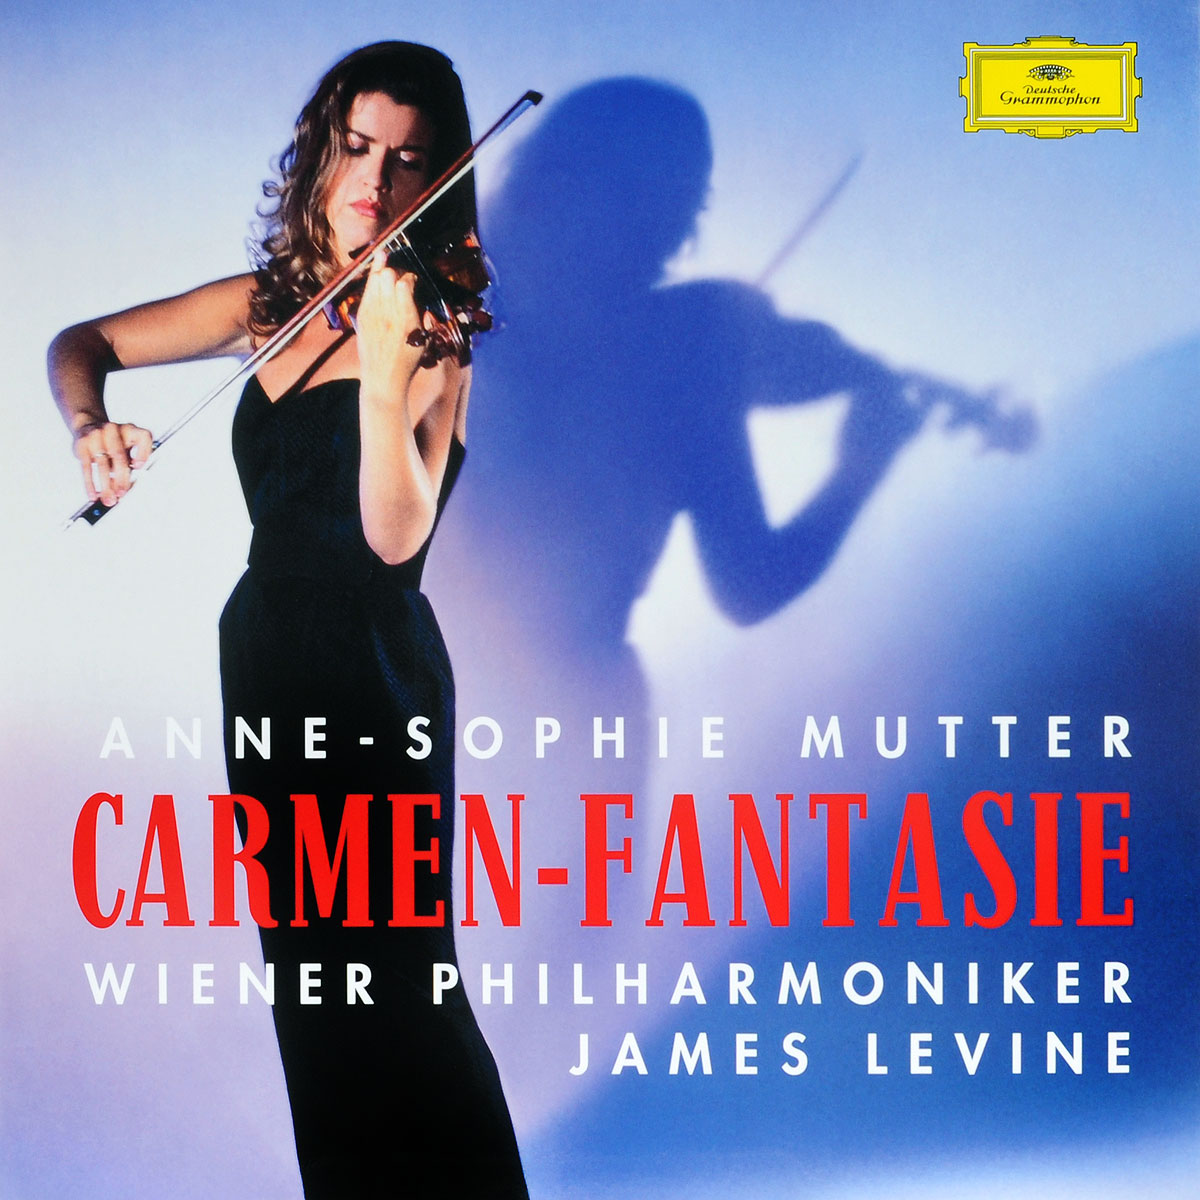 Анна-Софи Муттер,Wiener Philharmoniker,Джеймс Левайн Anne-Sophie Mutter, Wiener Philharmoniker, James Levine. Carmen-Fantasie (LP) анна софи муттер ламберт оркис anne sophie mutter lambert orkis beethoven die violinsonaten 4 cd